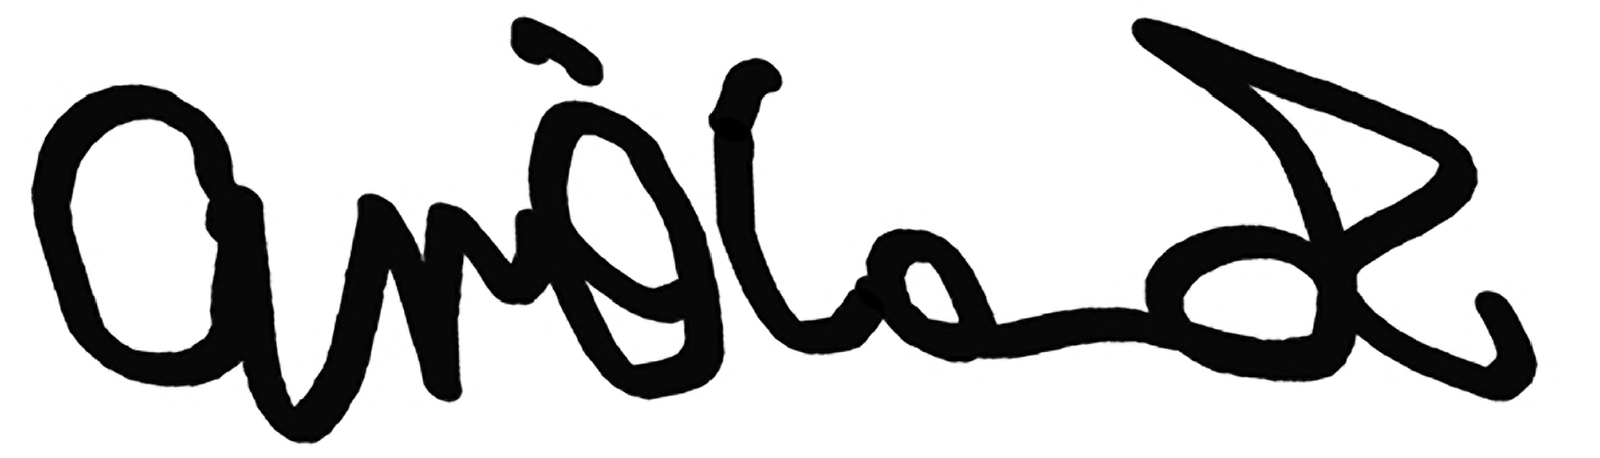 Anne O'Connor's Signature